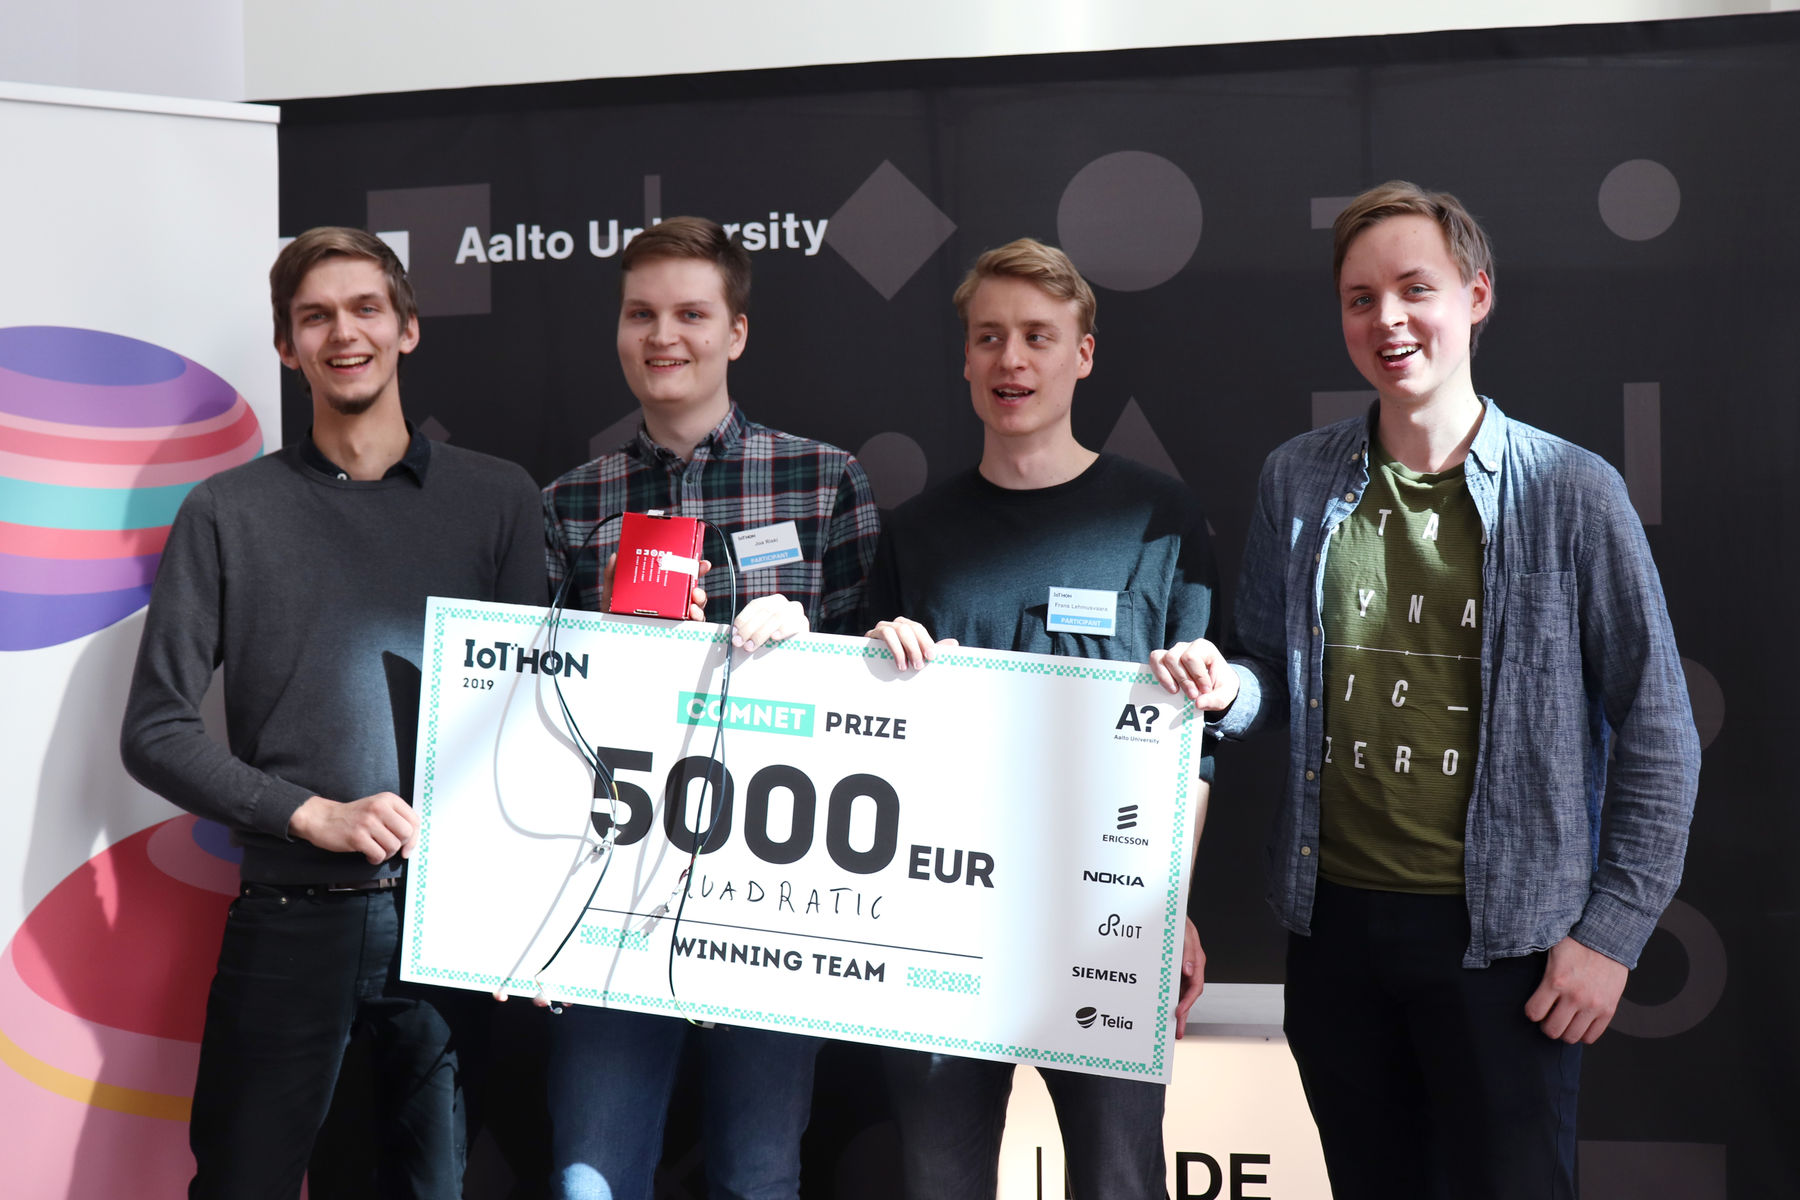 Aalto University / winner team of the Comnet prize / photo: Linda Koskinen